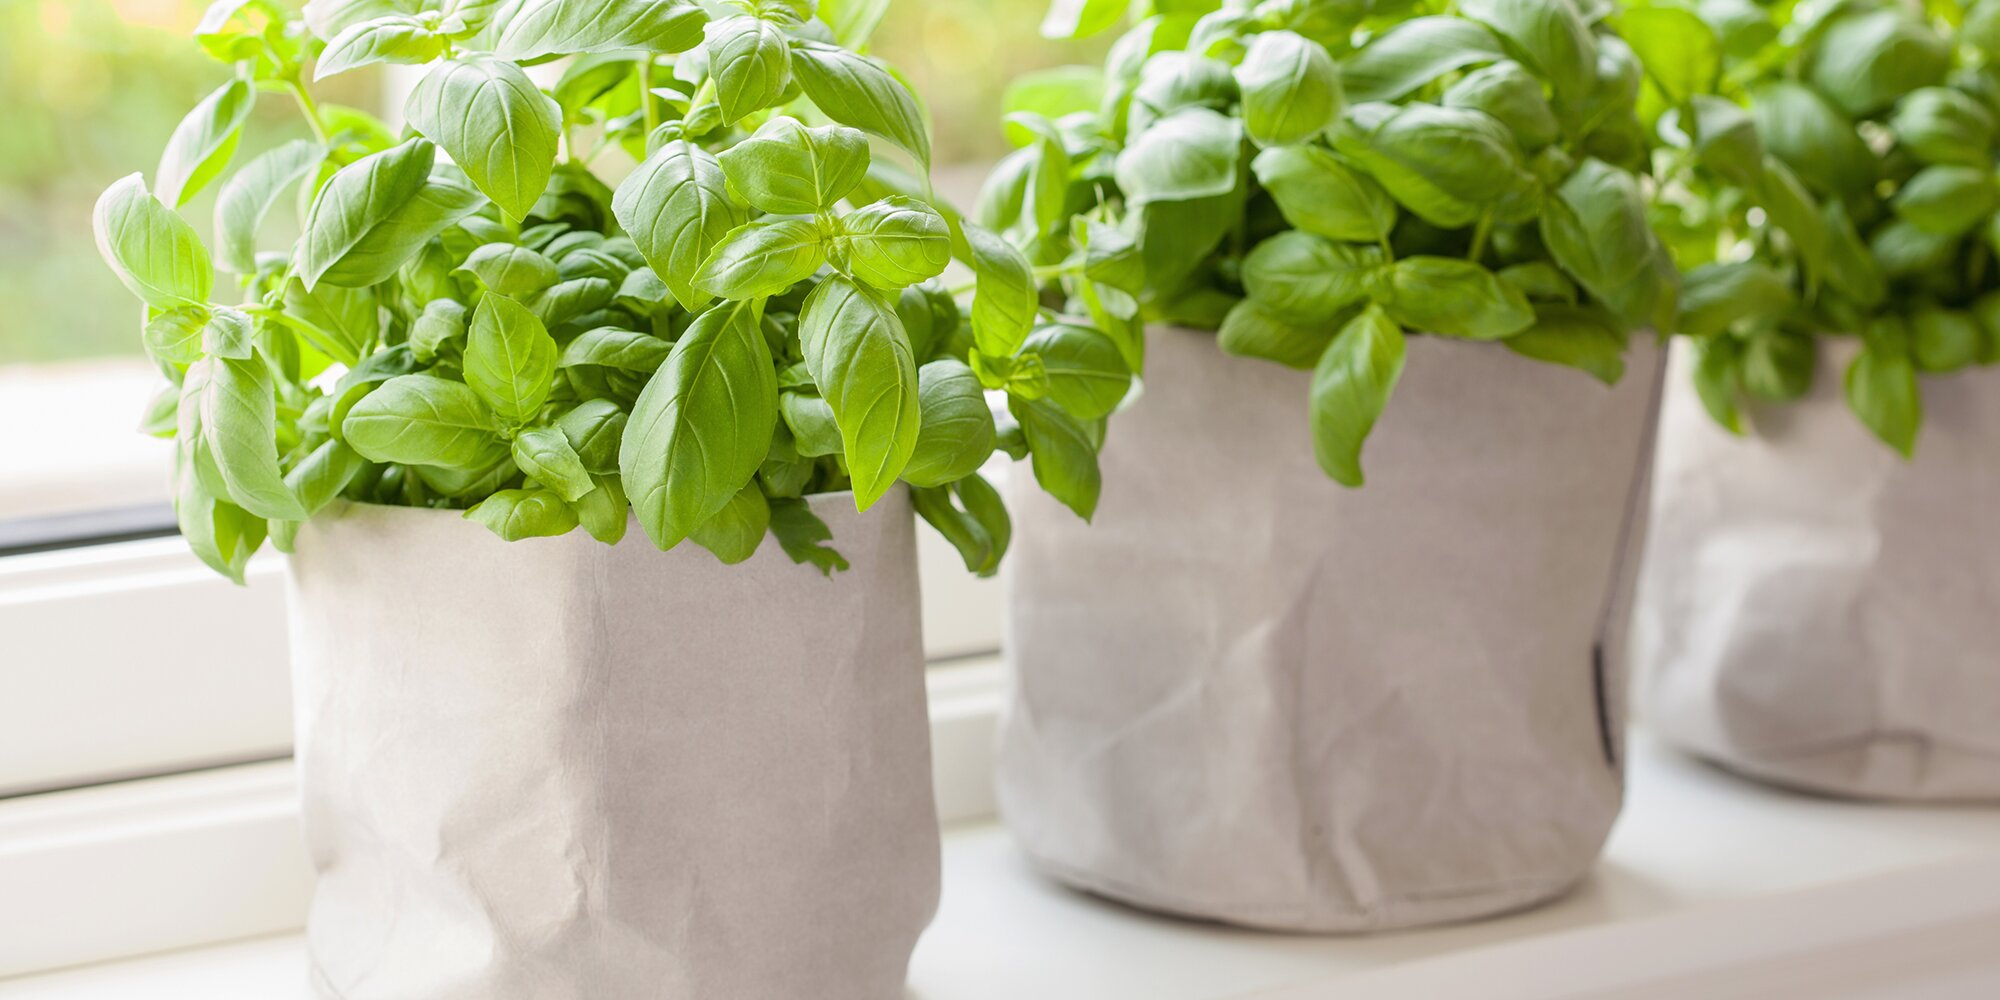 This TikTok Hack Will Let You Grow Basil From What You Buy at the Store